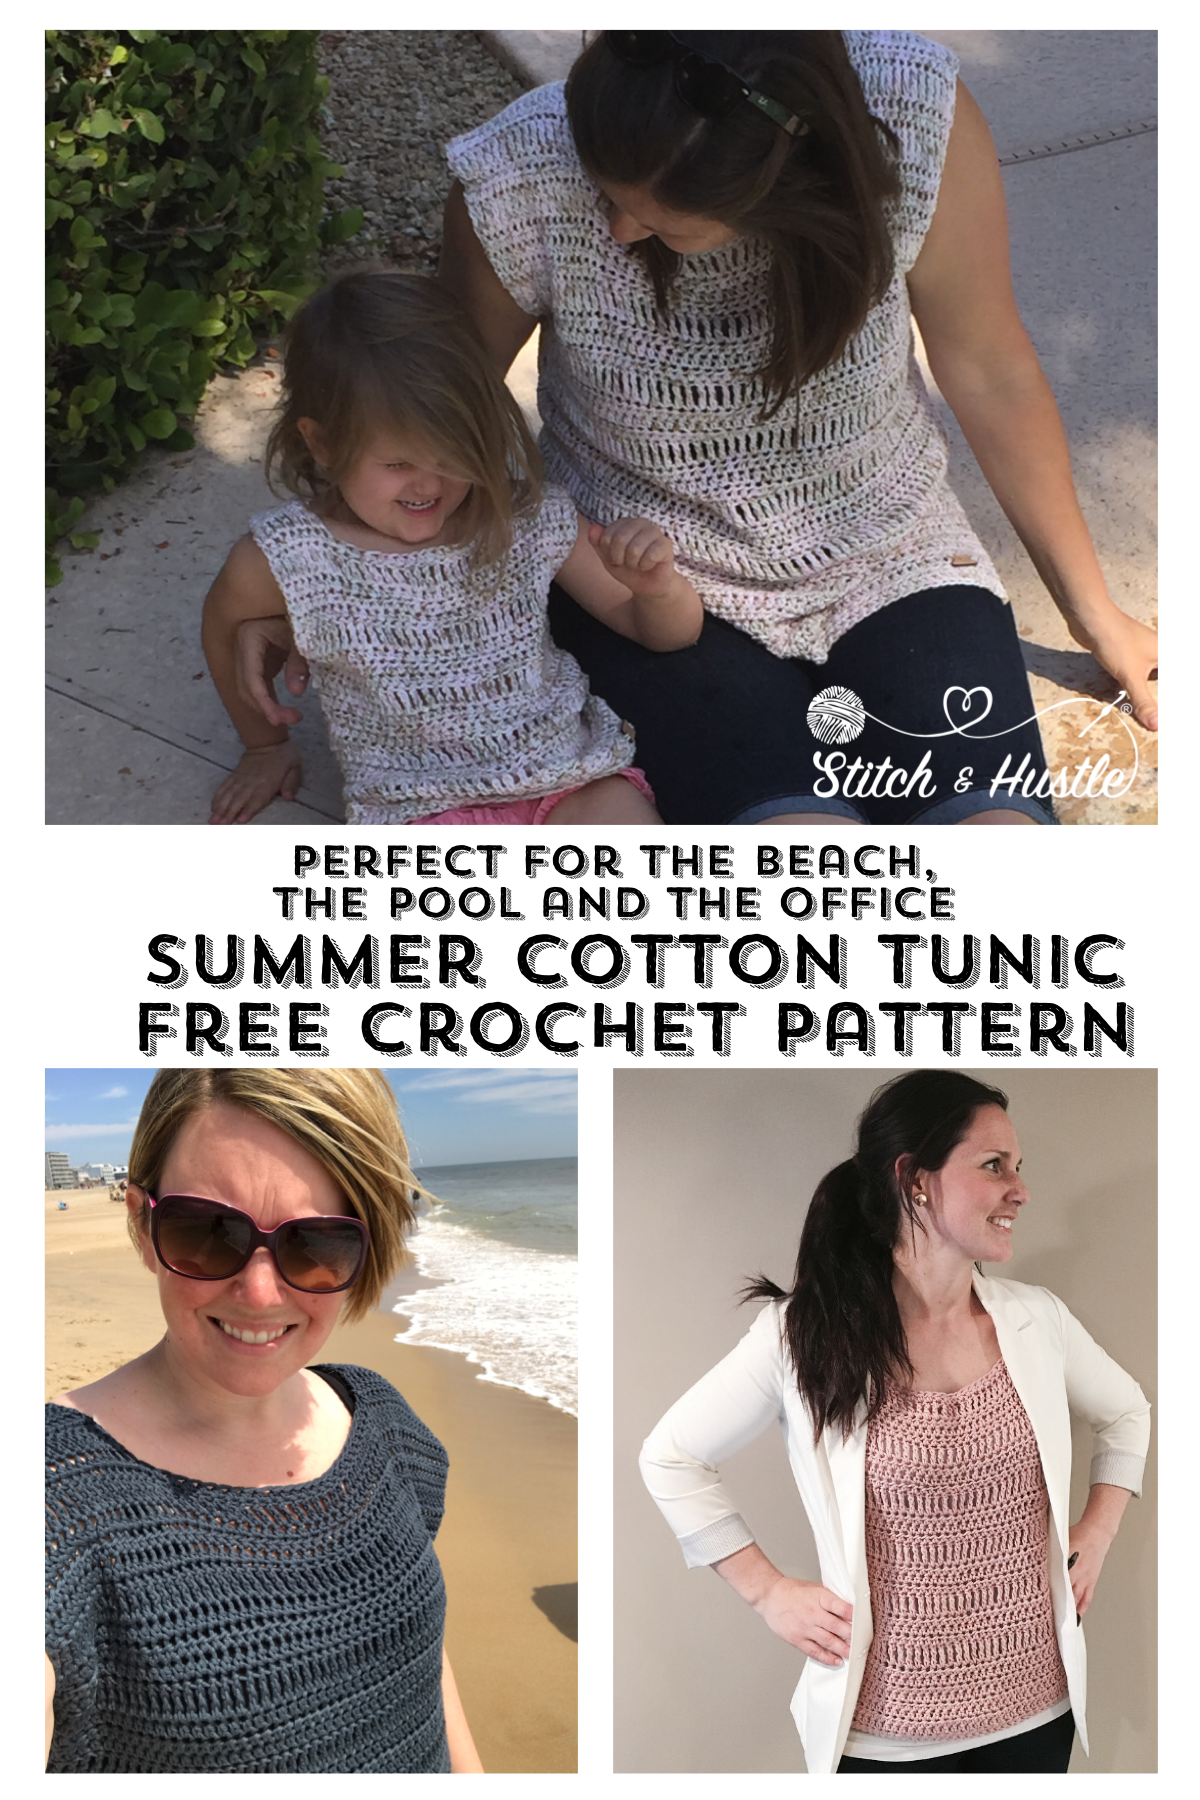 Manchester_Cotton_Tunic_Free_Crochet_Pattern_Stitch_And_Hustle_8566.png